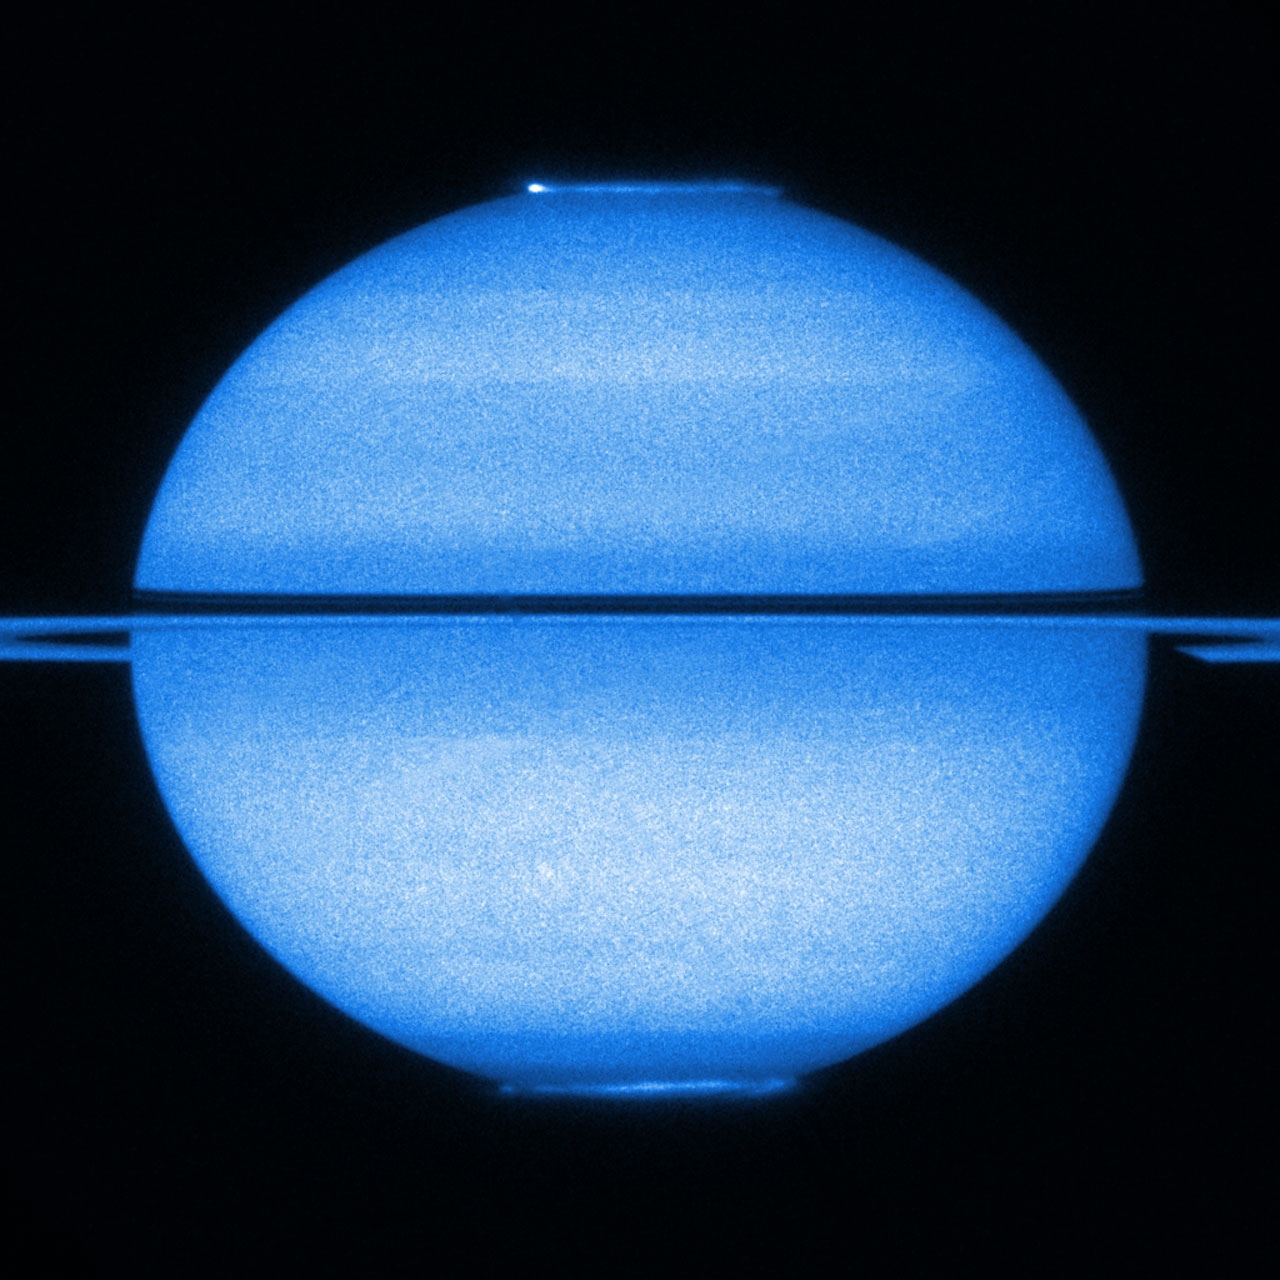 Double light show in a single shot: Hubble images both of Saturn's aurorae